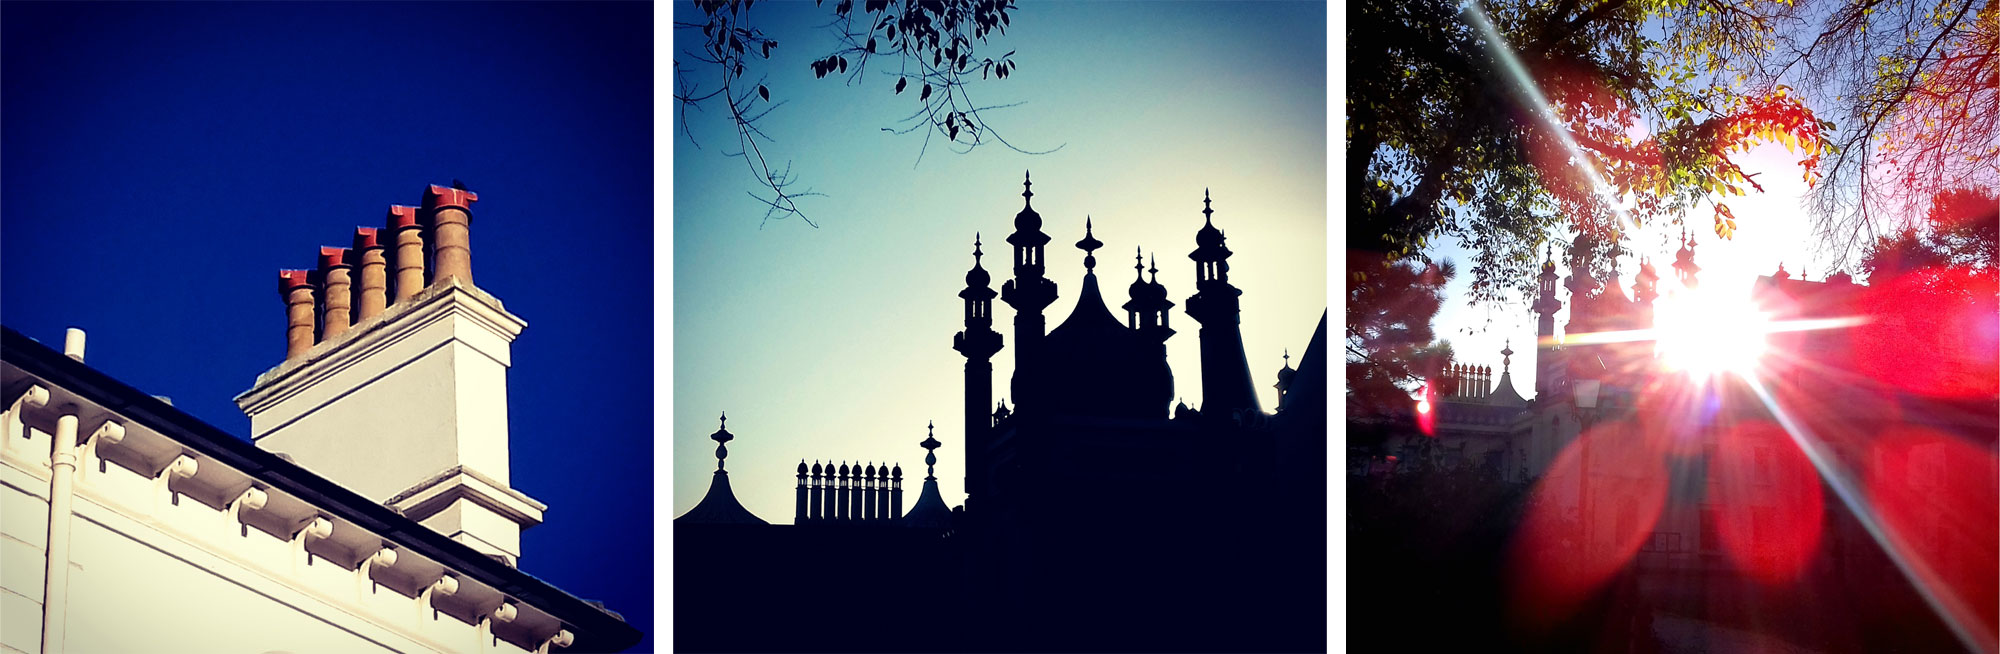 (waiting for pieces to dry in studio so went walking..)  #brighton #morning #brightonchimneys #chimneys #brightonpavilion #novembermorning #ilovebrighton #autumn #bluesky #clearsky #morningsunlight    Join me on Instagram www.instagram.com/ rowenagilbertceramics